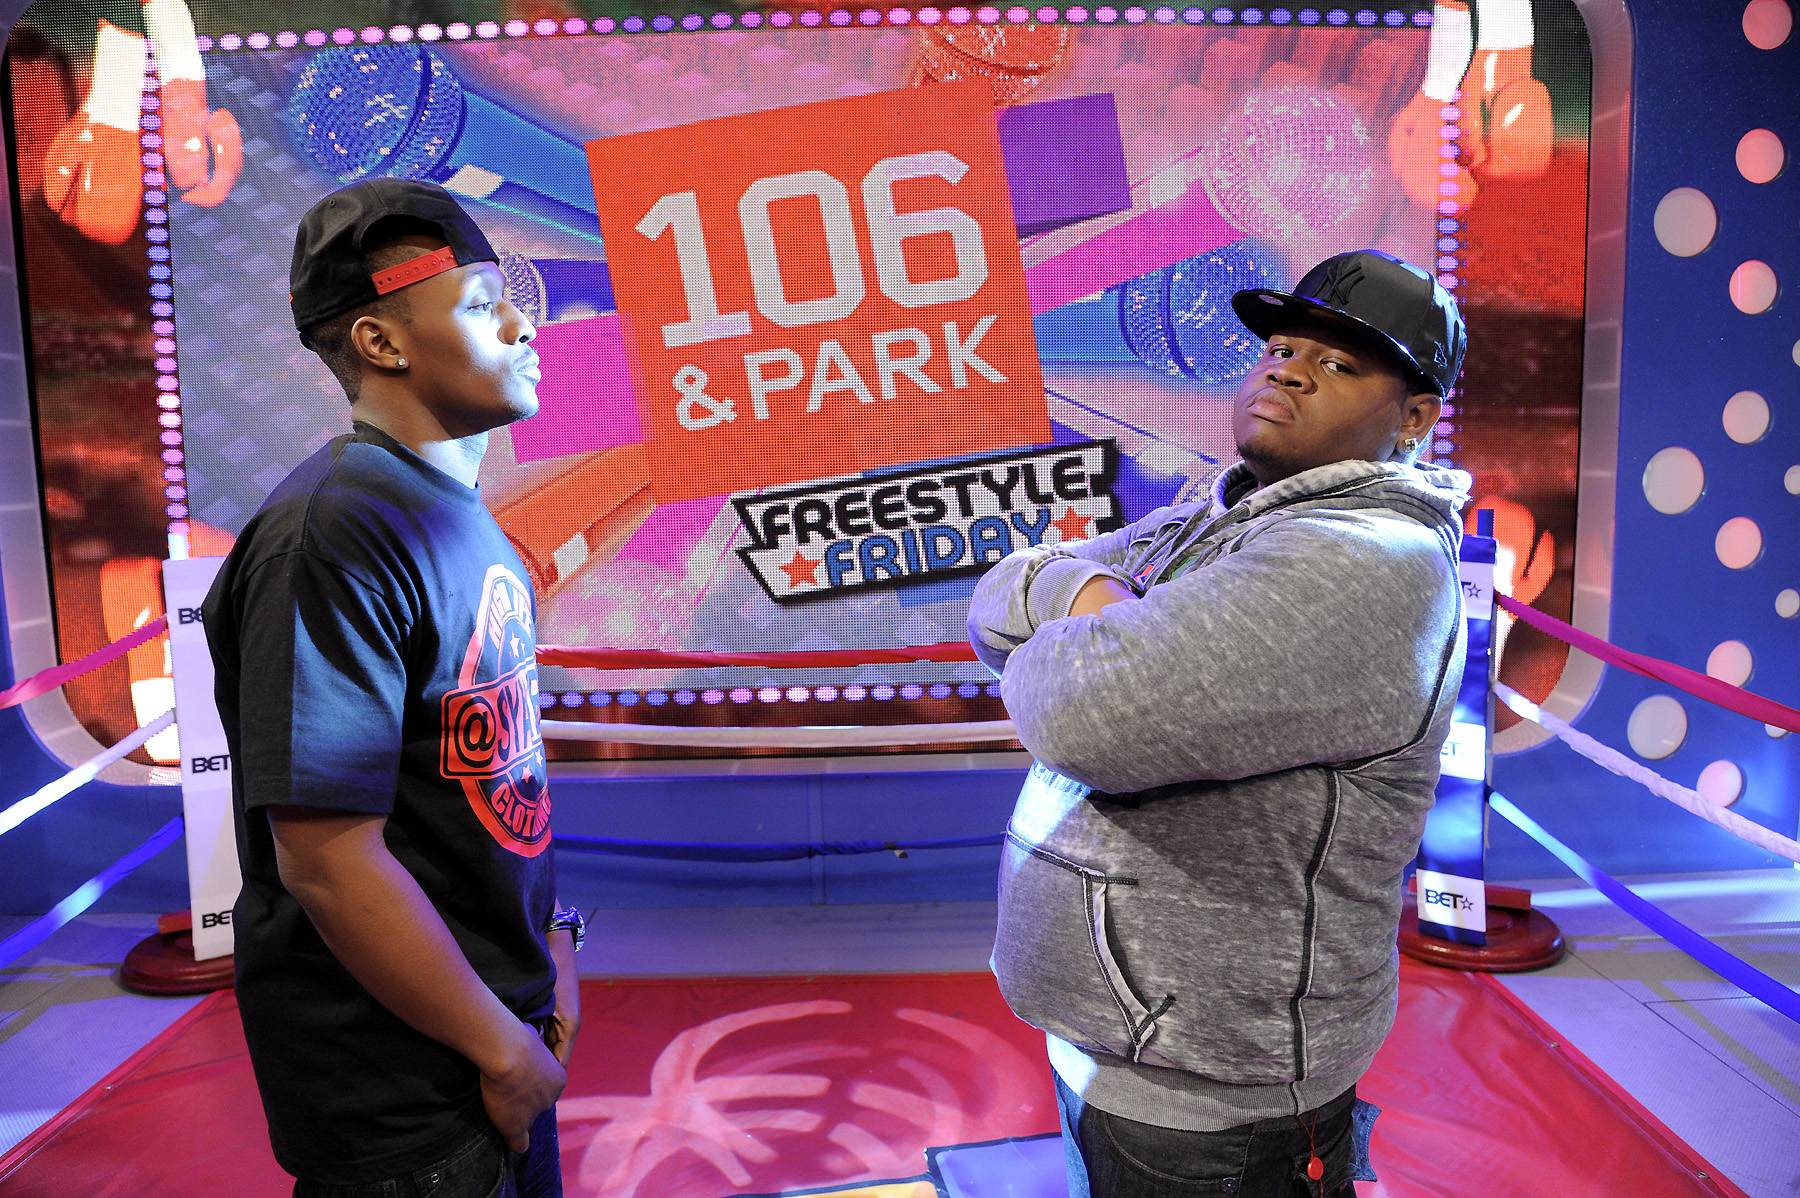 Battle Is On - Freestyle Friday contestants SyahBoy and Relly face off at 106 & Park, April 6, 2012. (photo: John Ricard / BET)